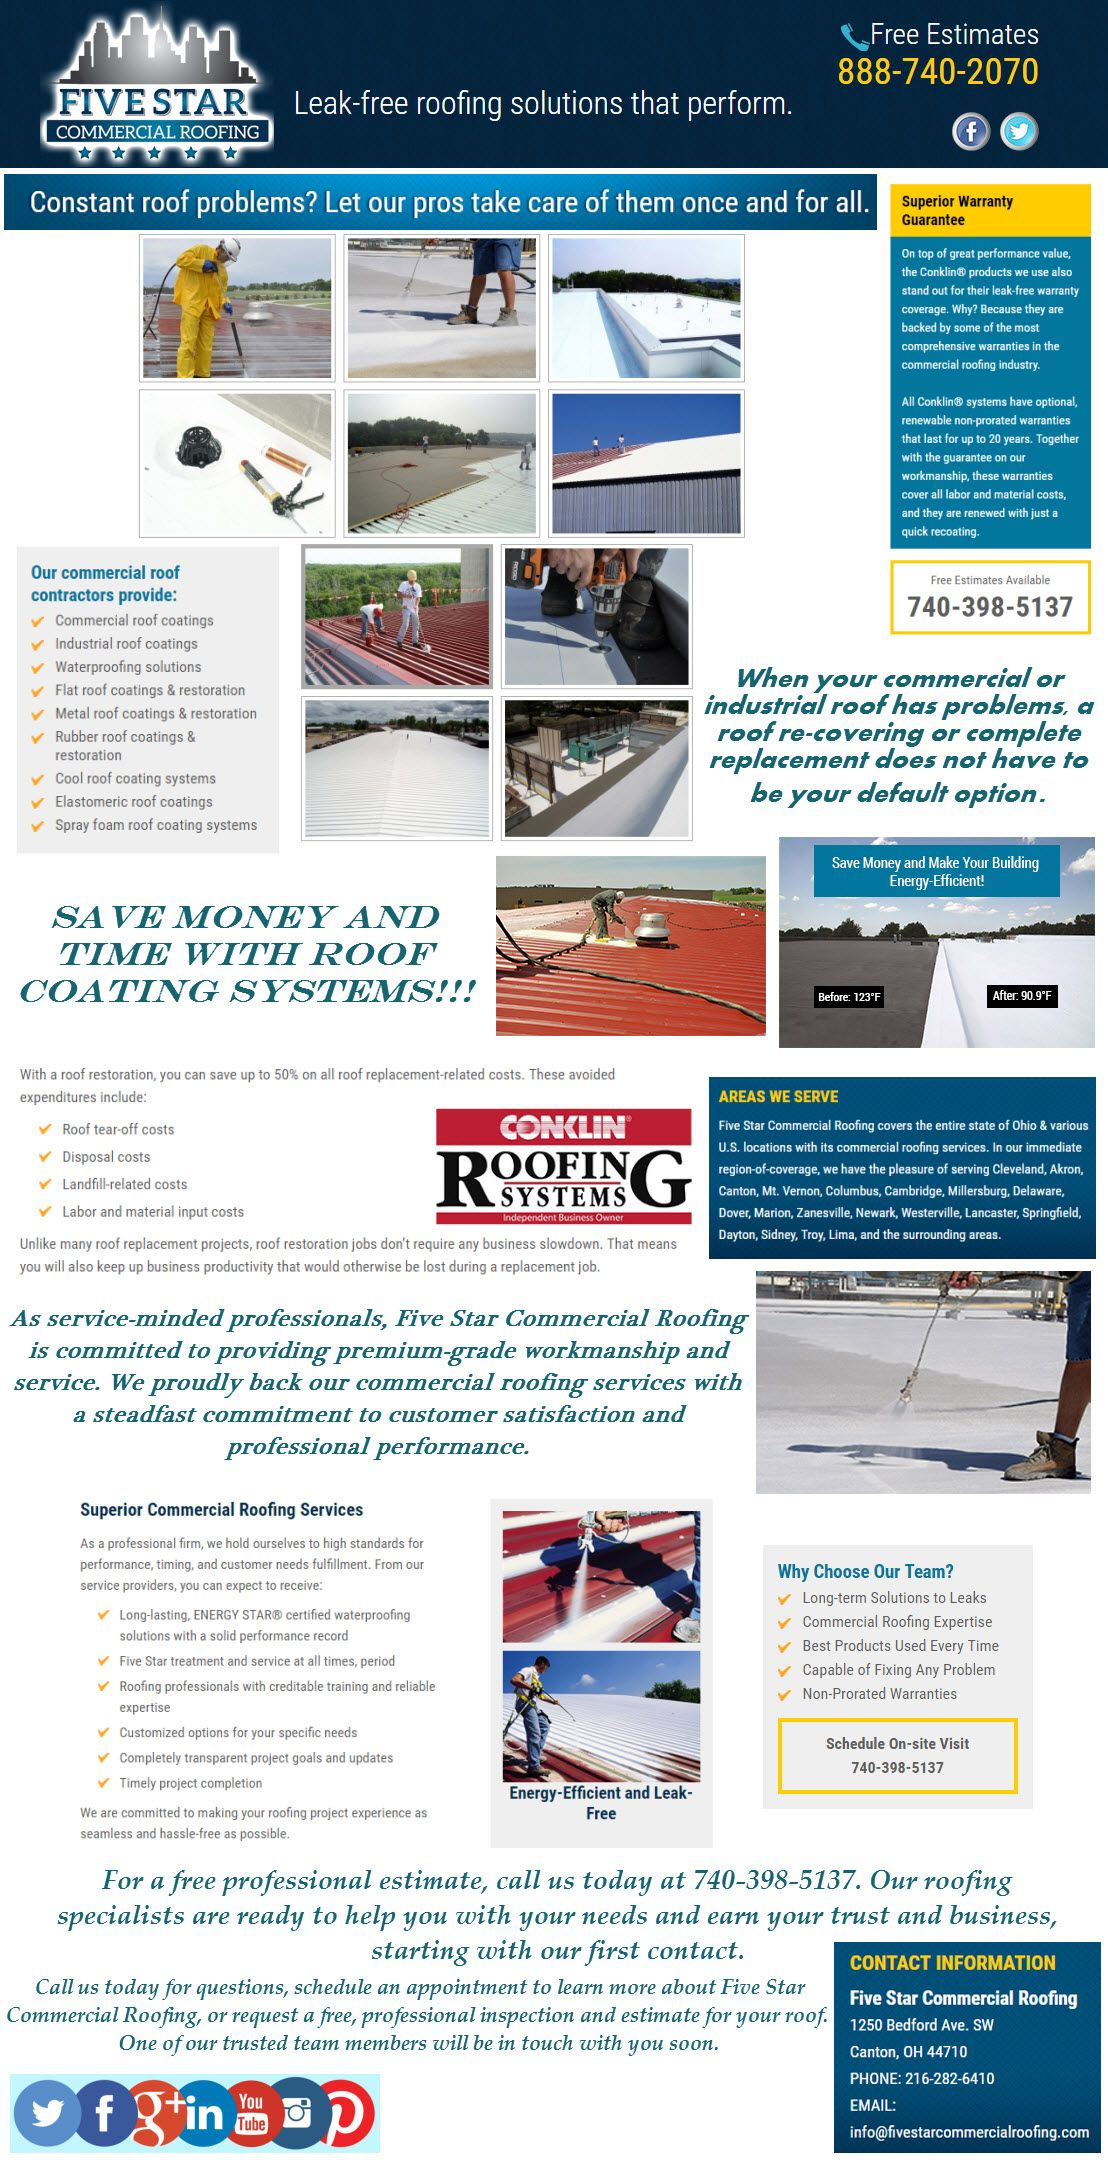 Pin By Mejonsnow On Commercial Roofing Services Commercial Roofing Roof Problems Roofing Services